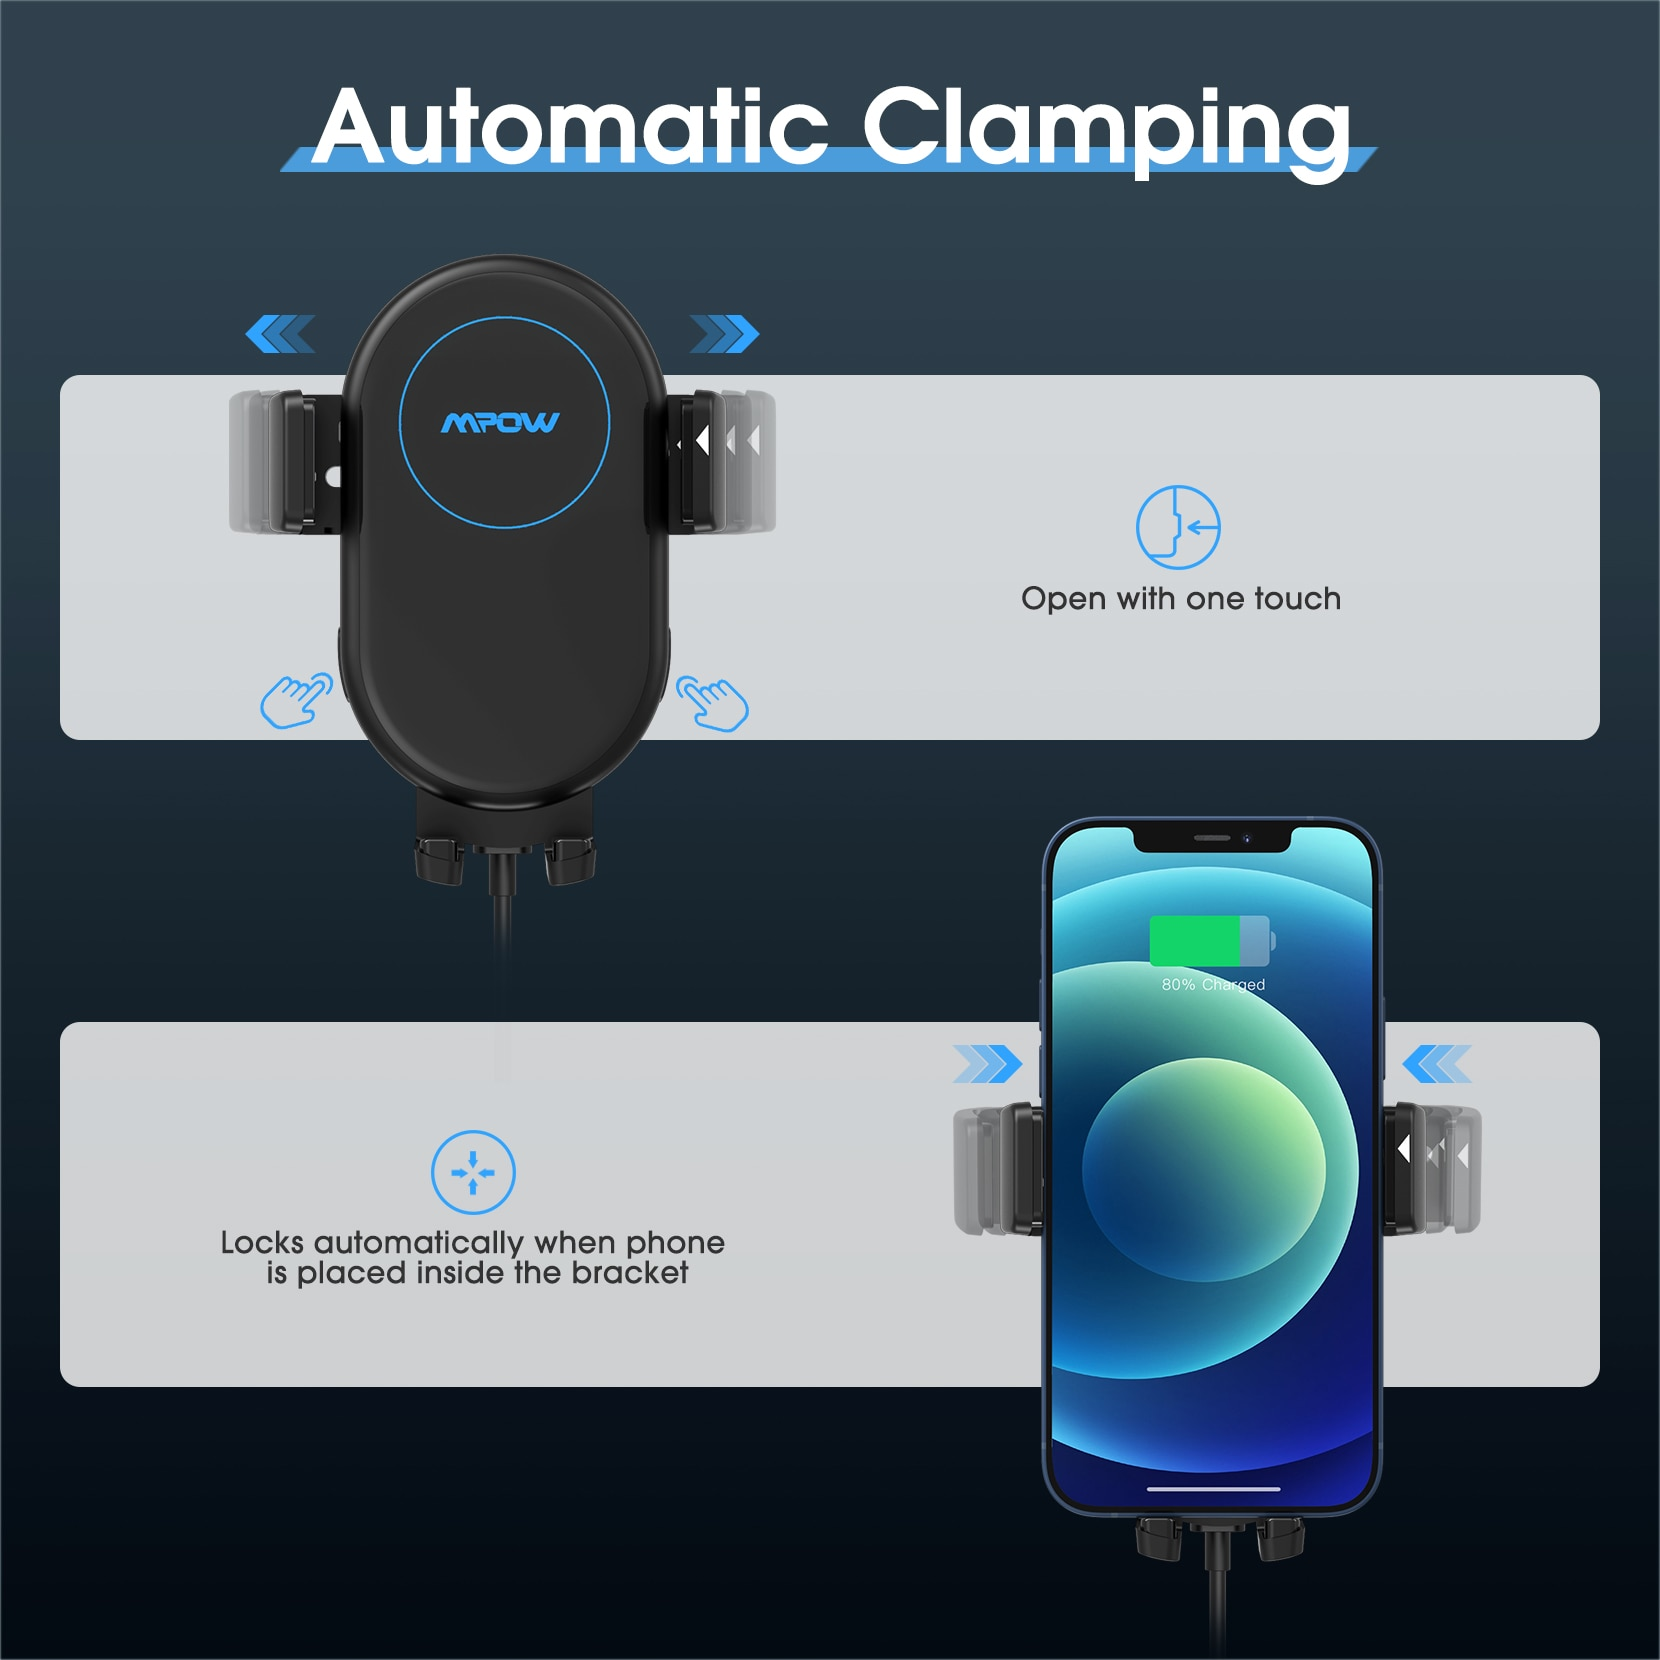 H40520415edfe4d0cb1baafde4da1524cM - MPOW CA164 Wireless Car Charger 10W Auto-clamping Qi Fast Charging Car Mount with Built-in Battery Cup Holder Vent Phone Holder